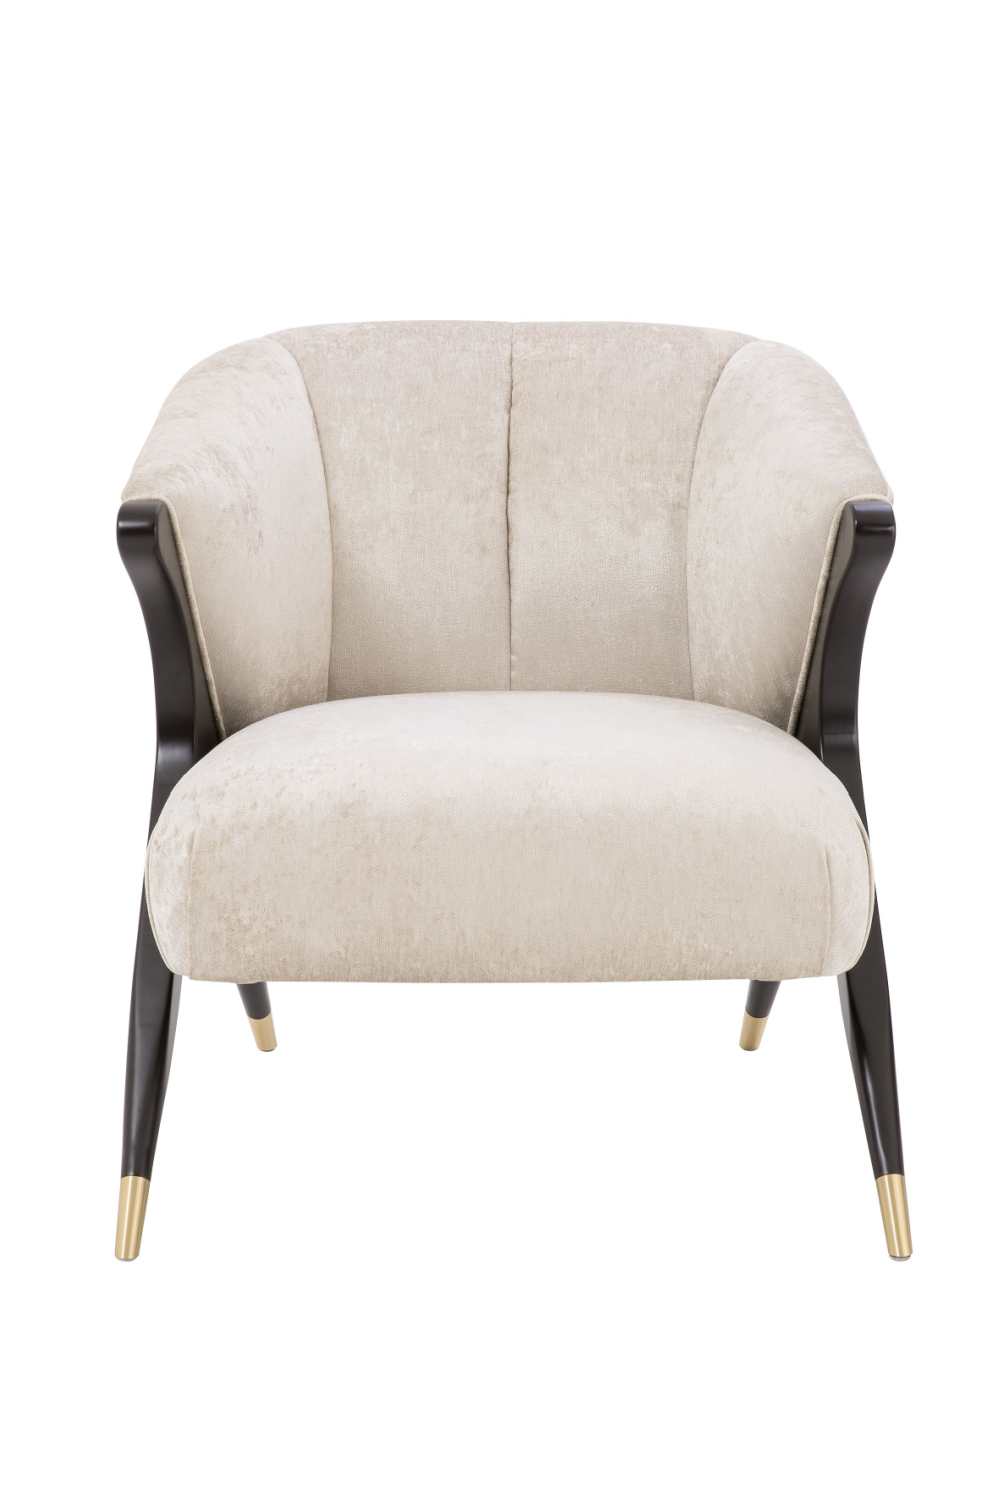 Off-White Upholstered Barrel Chair | Eichholtz Pavone | #1 Eichholtz Retailer